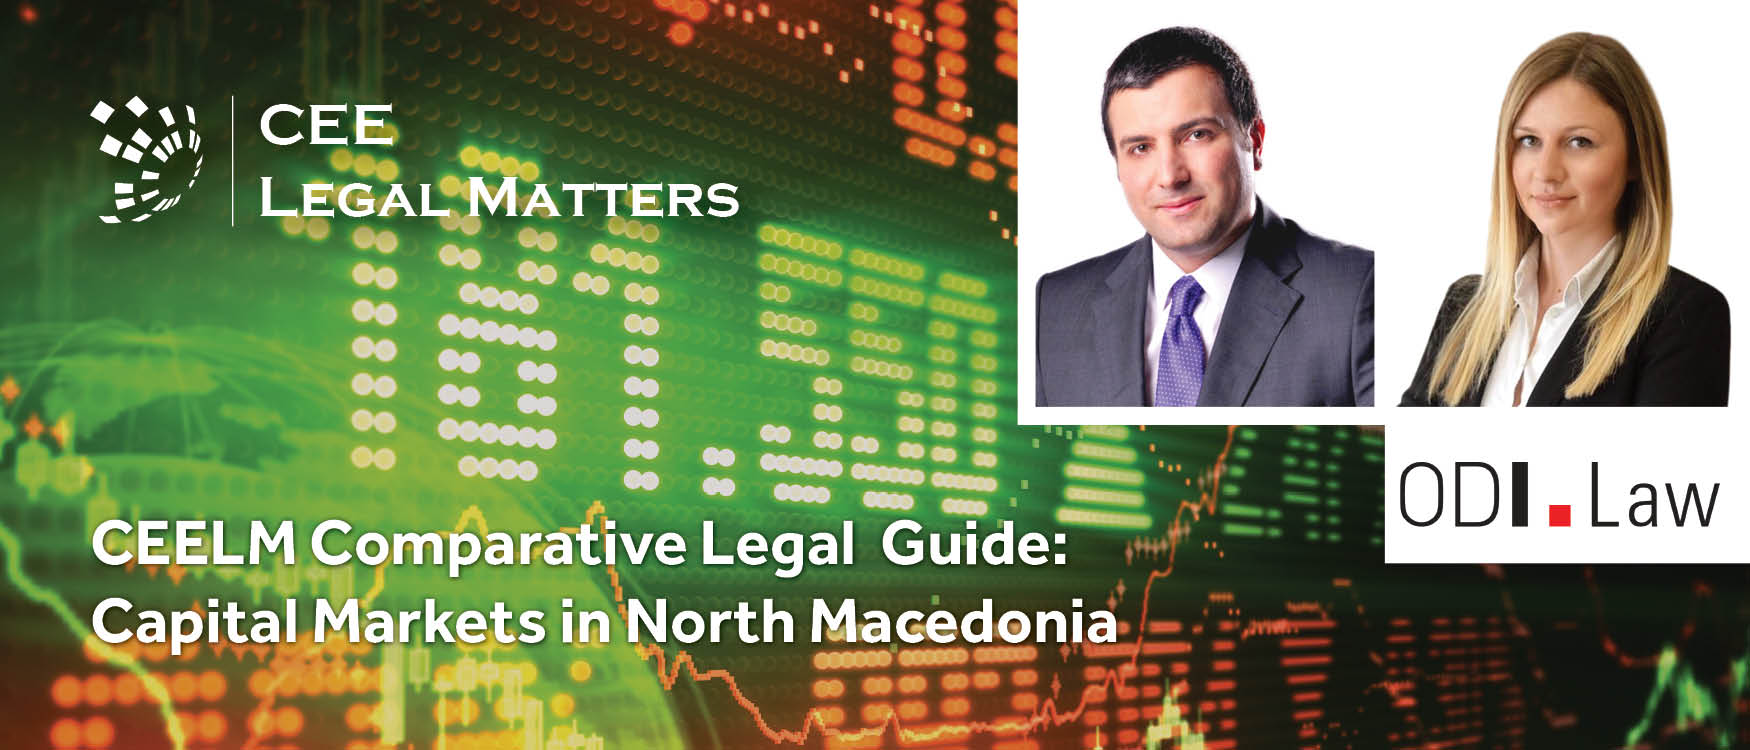 Capital Markets in North Macedonia